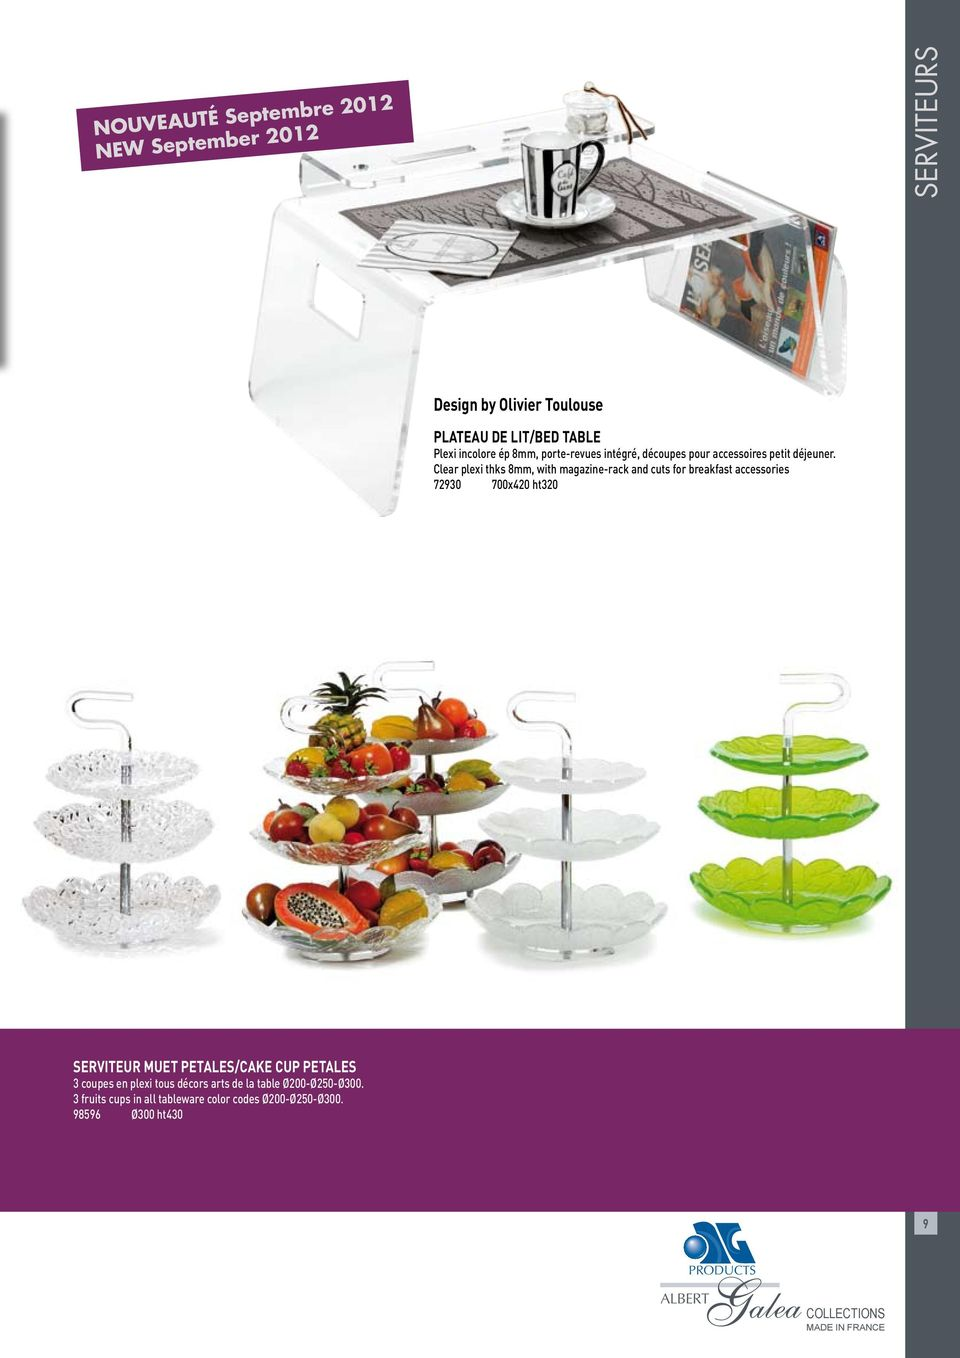 Clear plexi thks 8mm, with magazine-rack and cuts for breakfast accessories 72930 700x420 ht320 SERVITEUR MUET PETALES/CAKE CUP